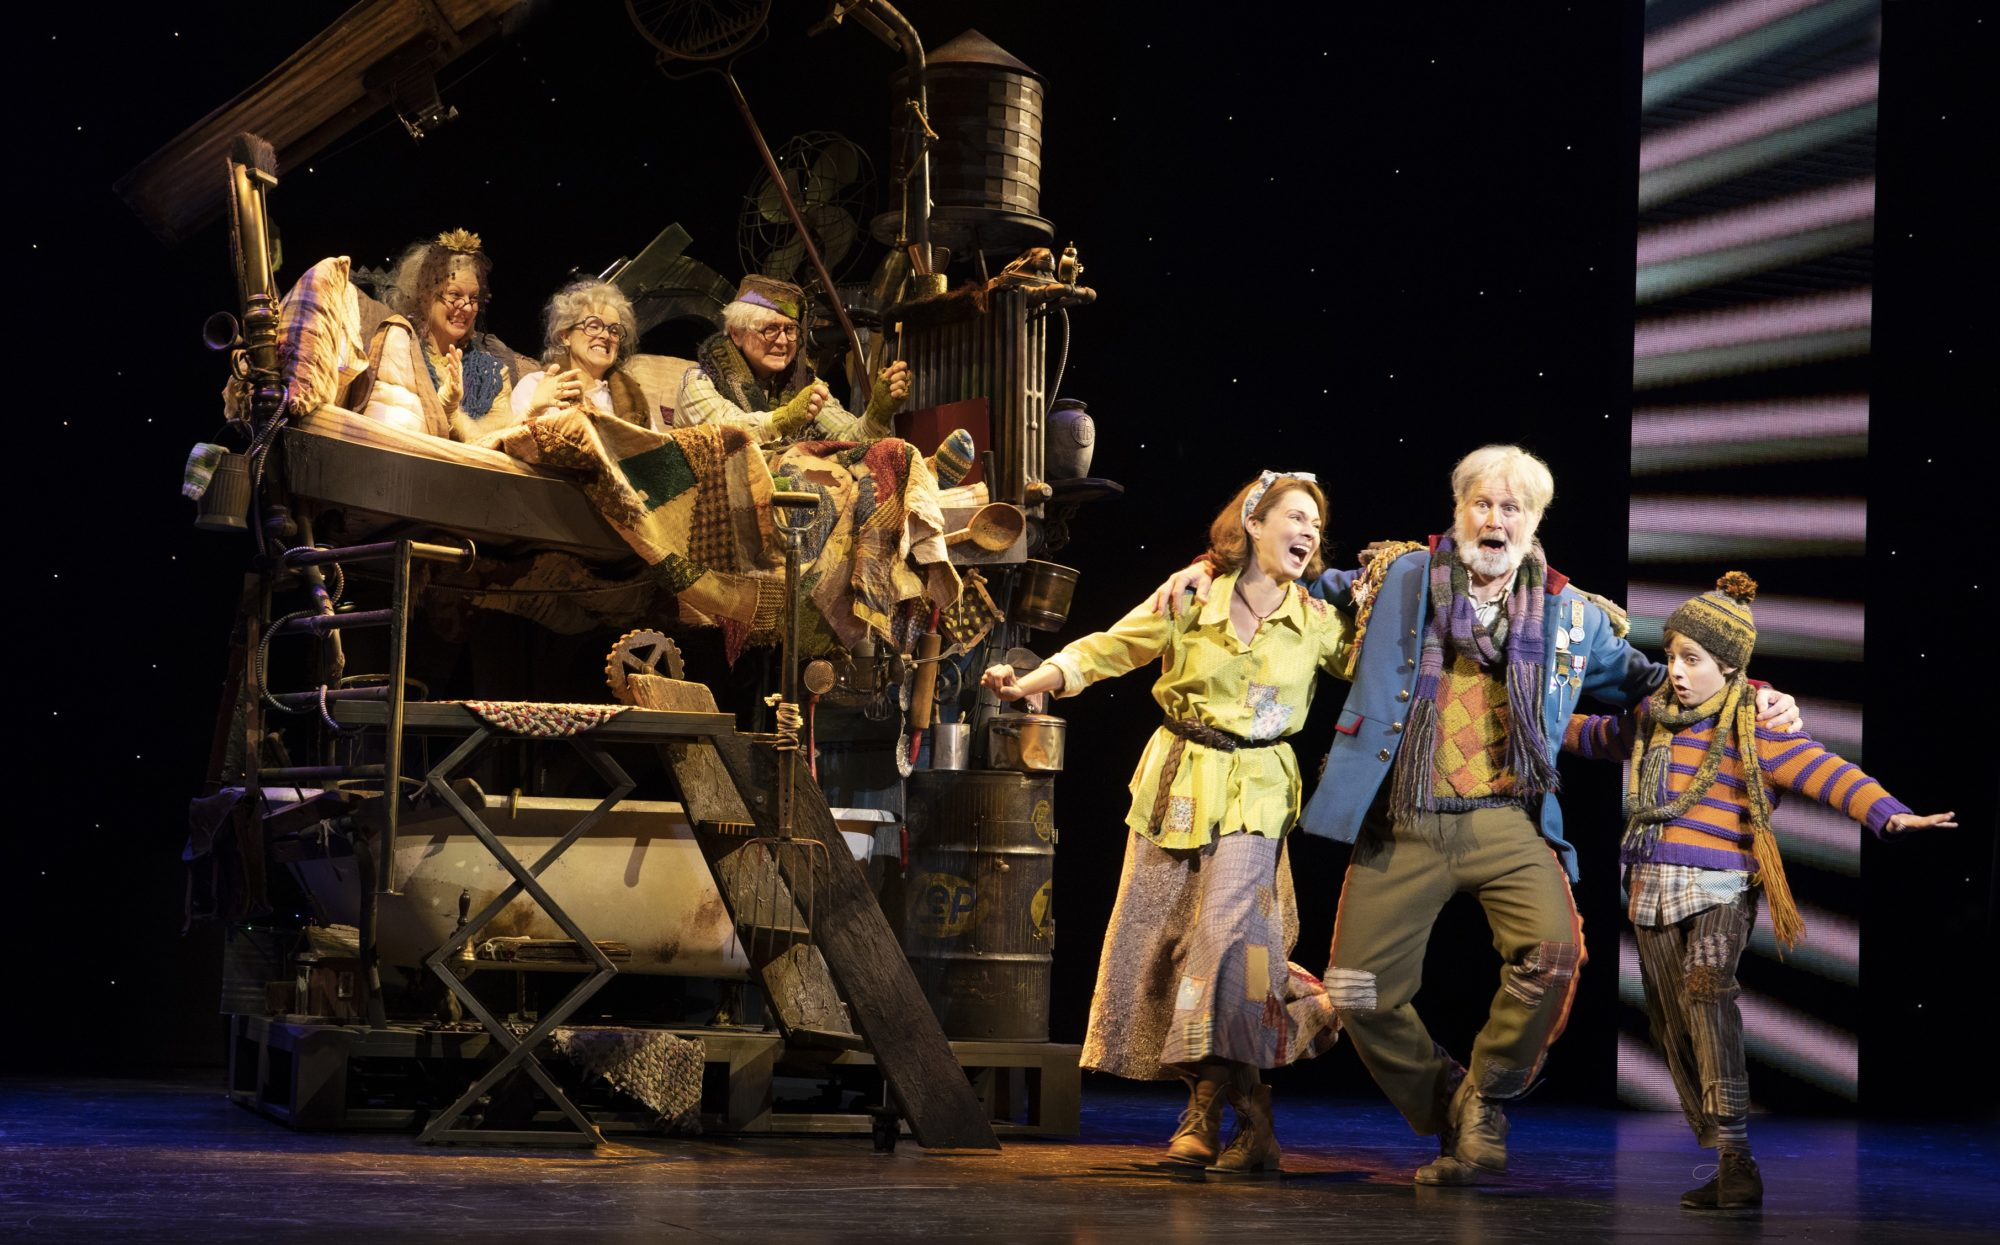 James Young/Grandpa Joe Shares All Kinds Of Reasons To See This Broadway In Richmond Show